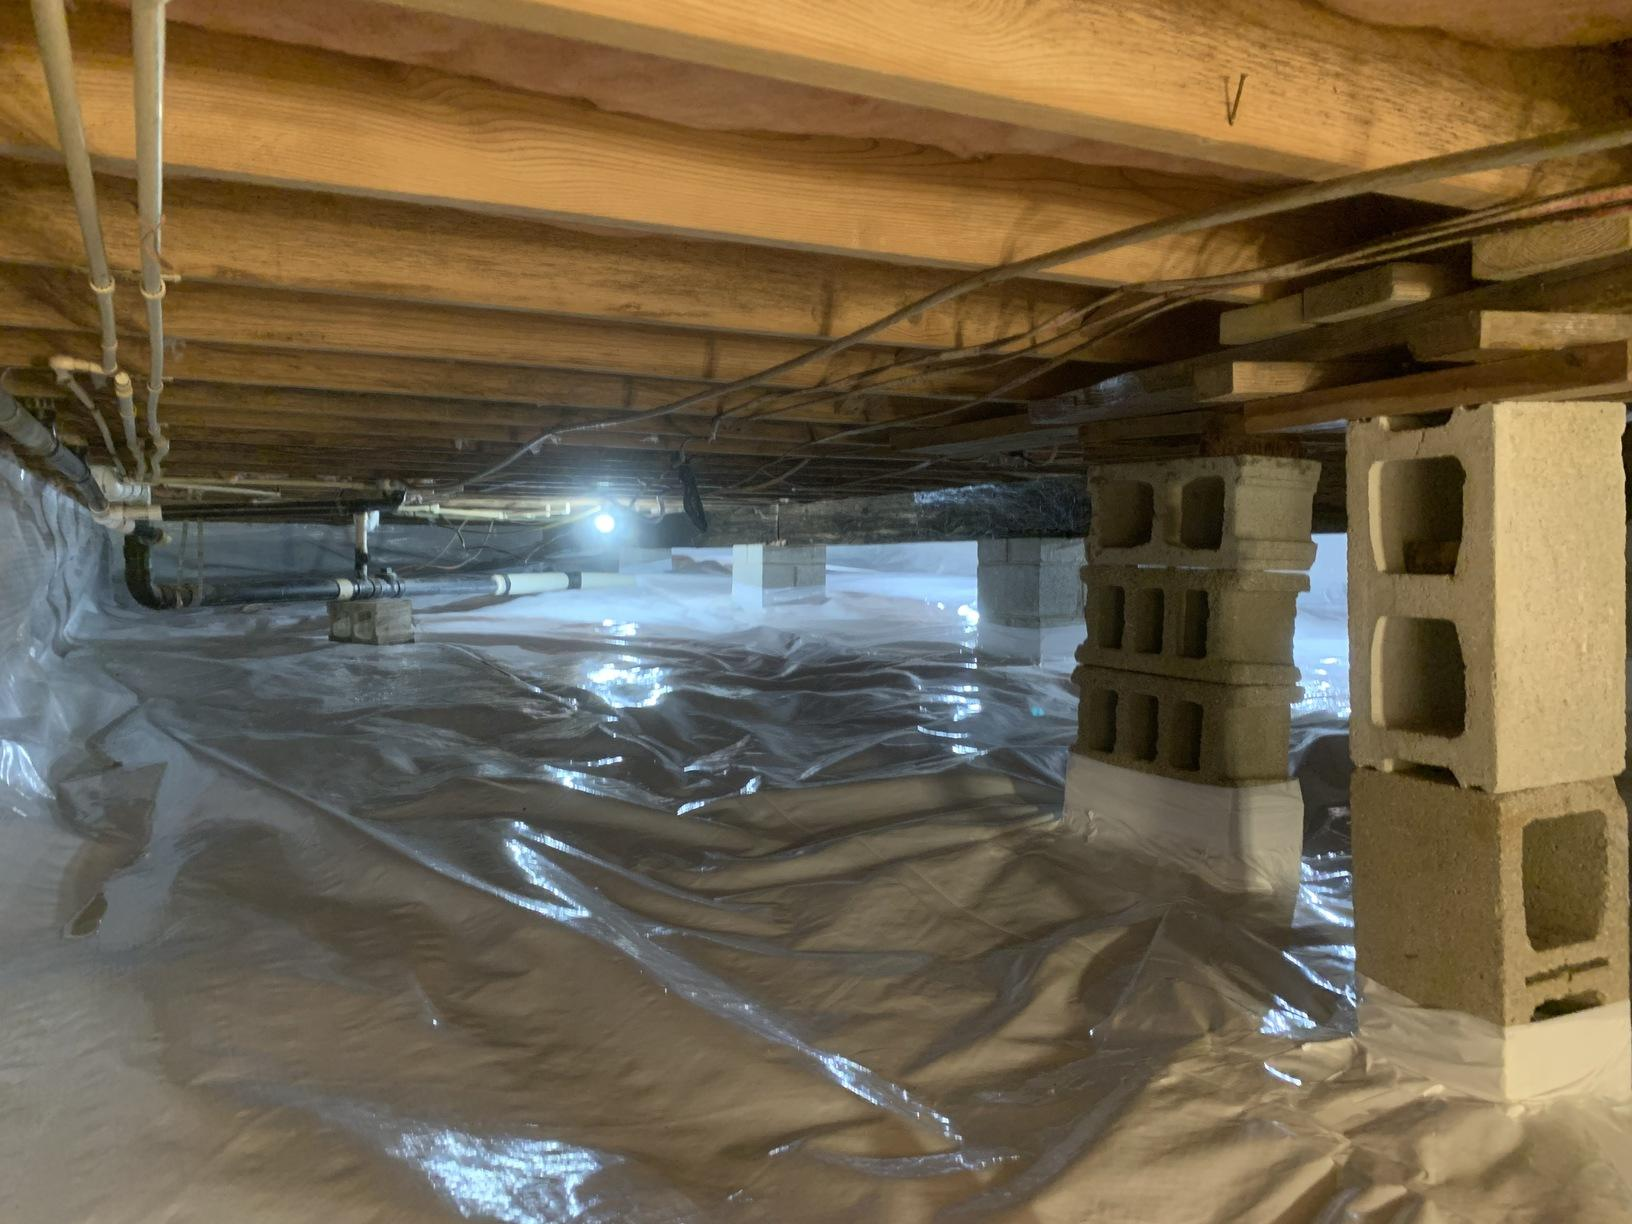 Crawlspace center joist after CleanSpace.